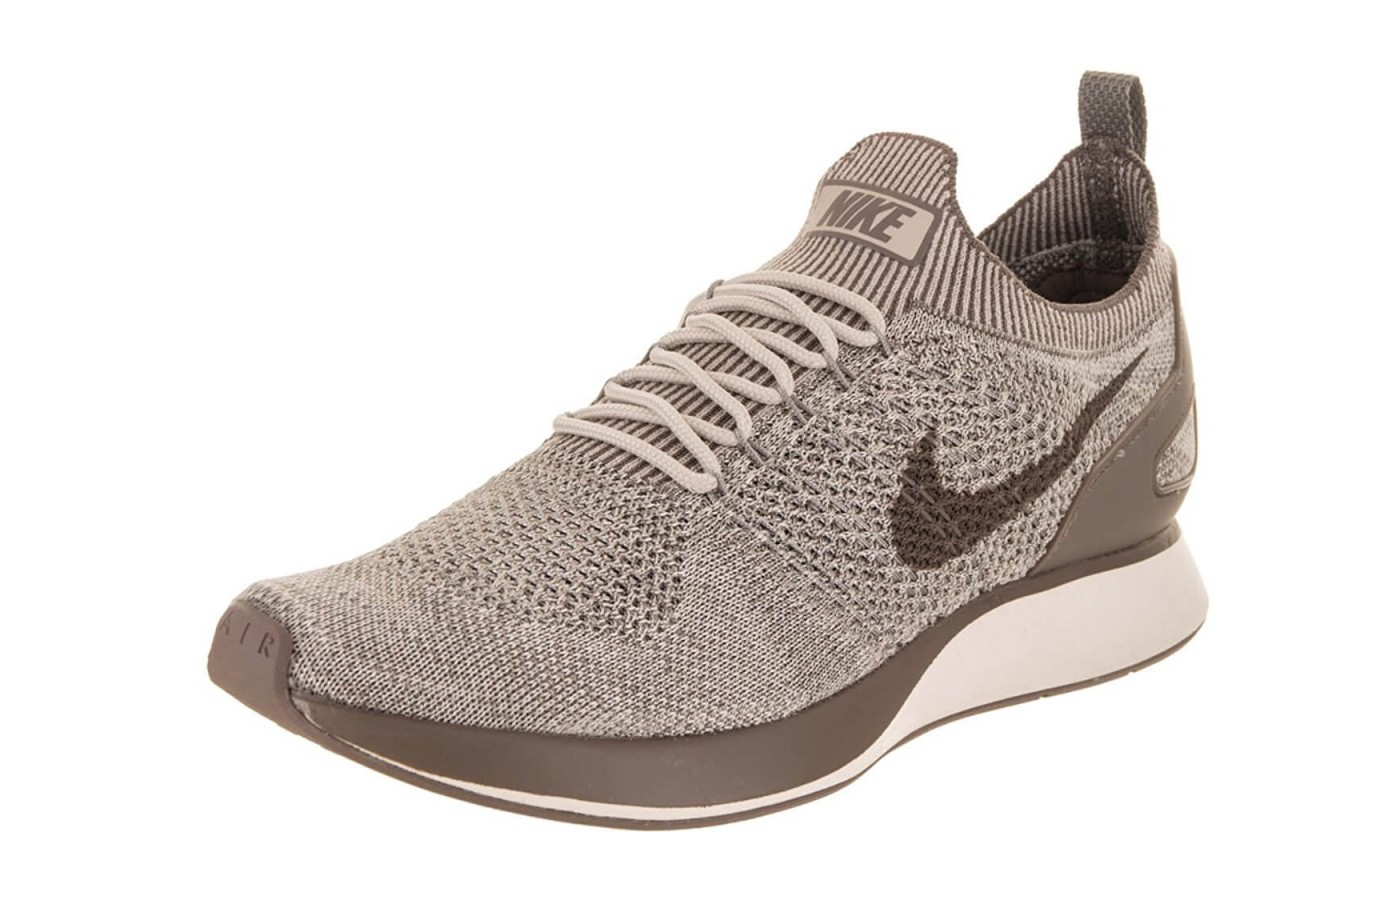 7af222b5cd0a The Nike Air Zoom Mariah Flyknit Racer features a breathable Flyknit upper  ...